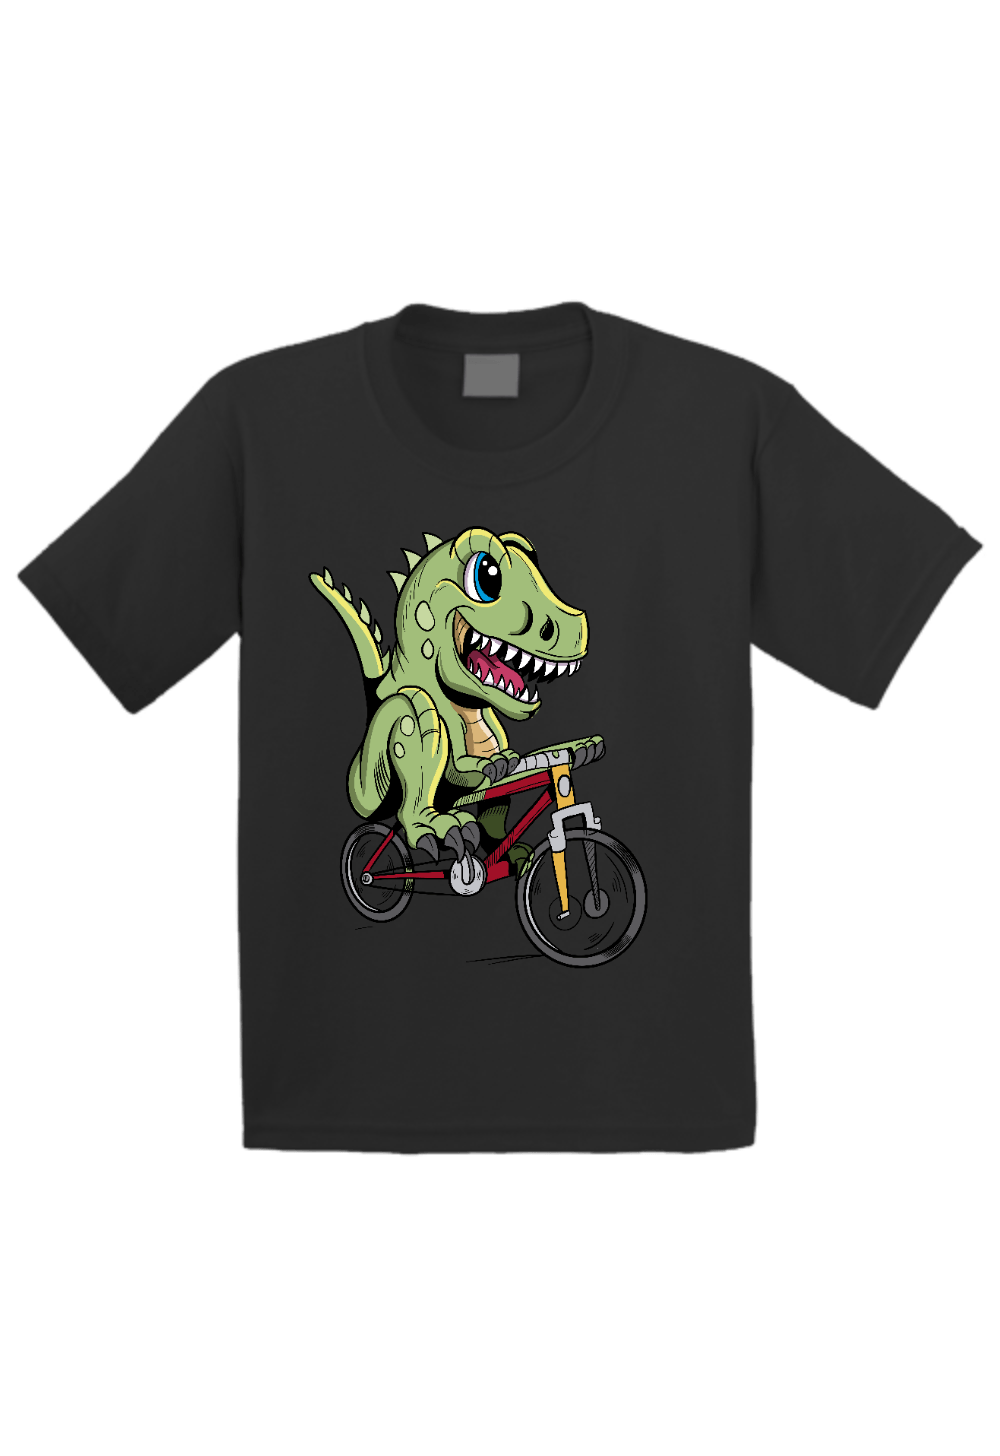 Dinosaur Riding Bike Toddler Shirt